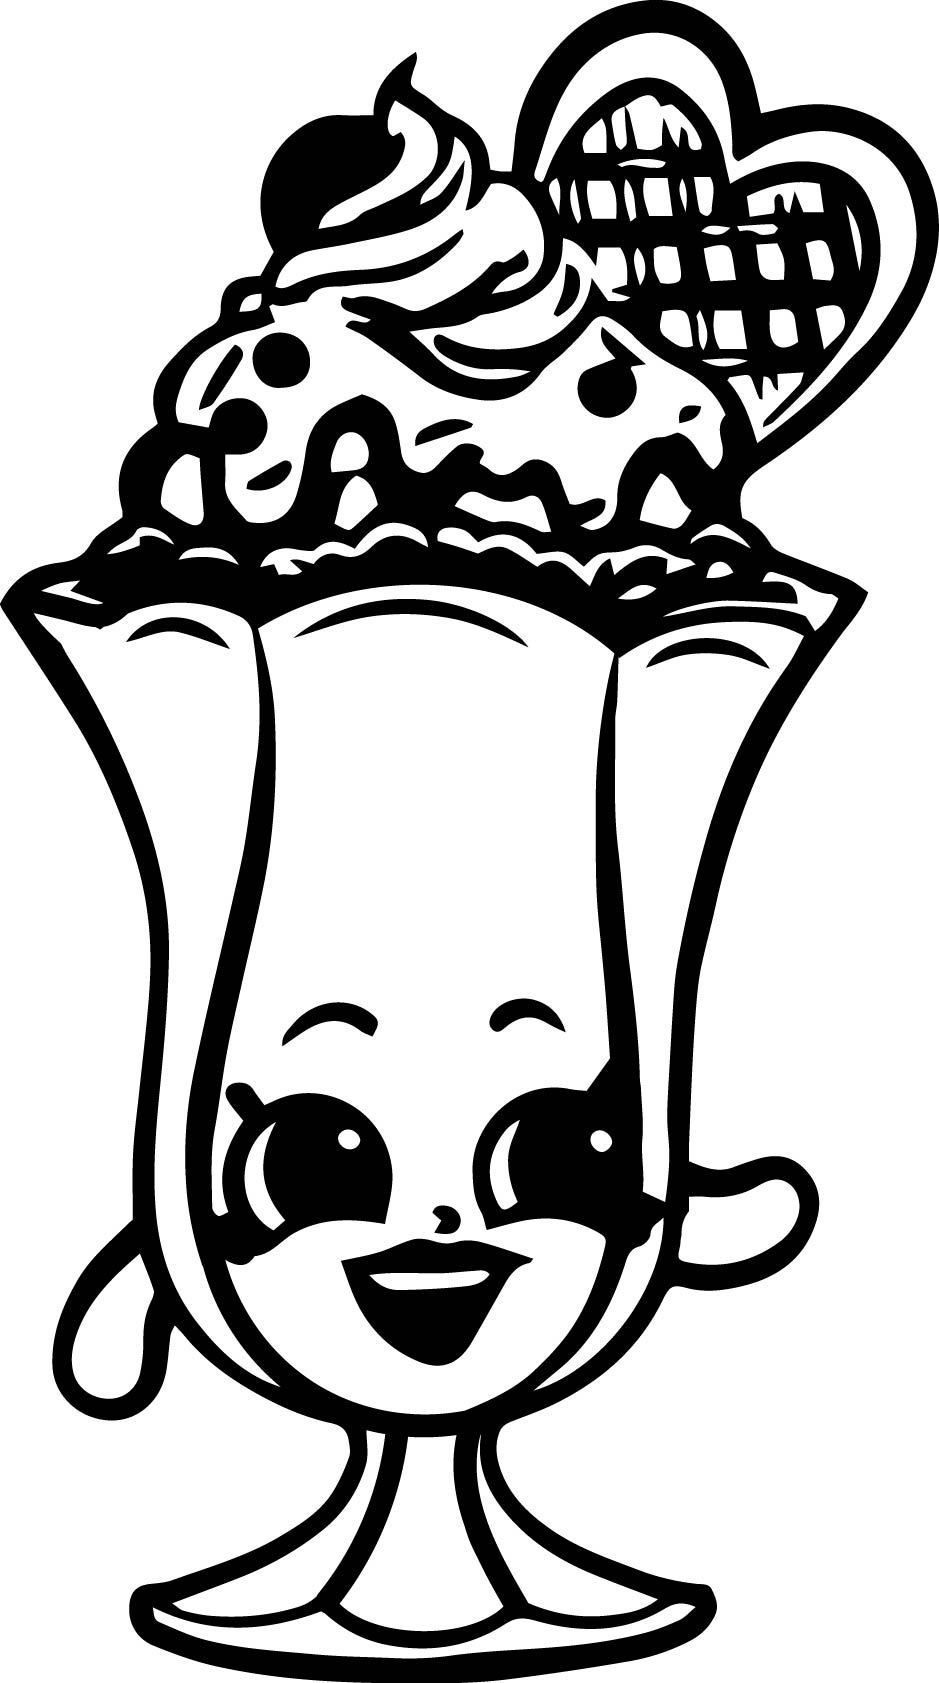 Shopkins Crema Coloring Page